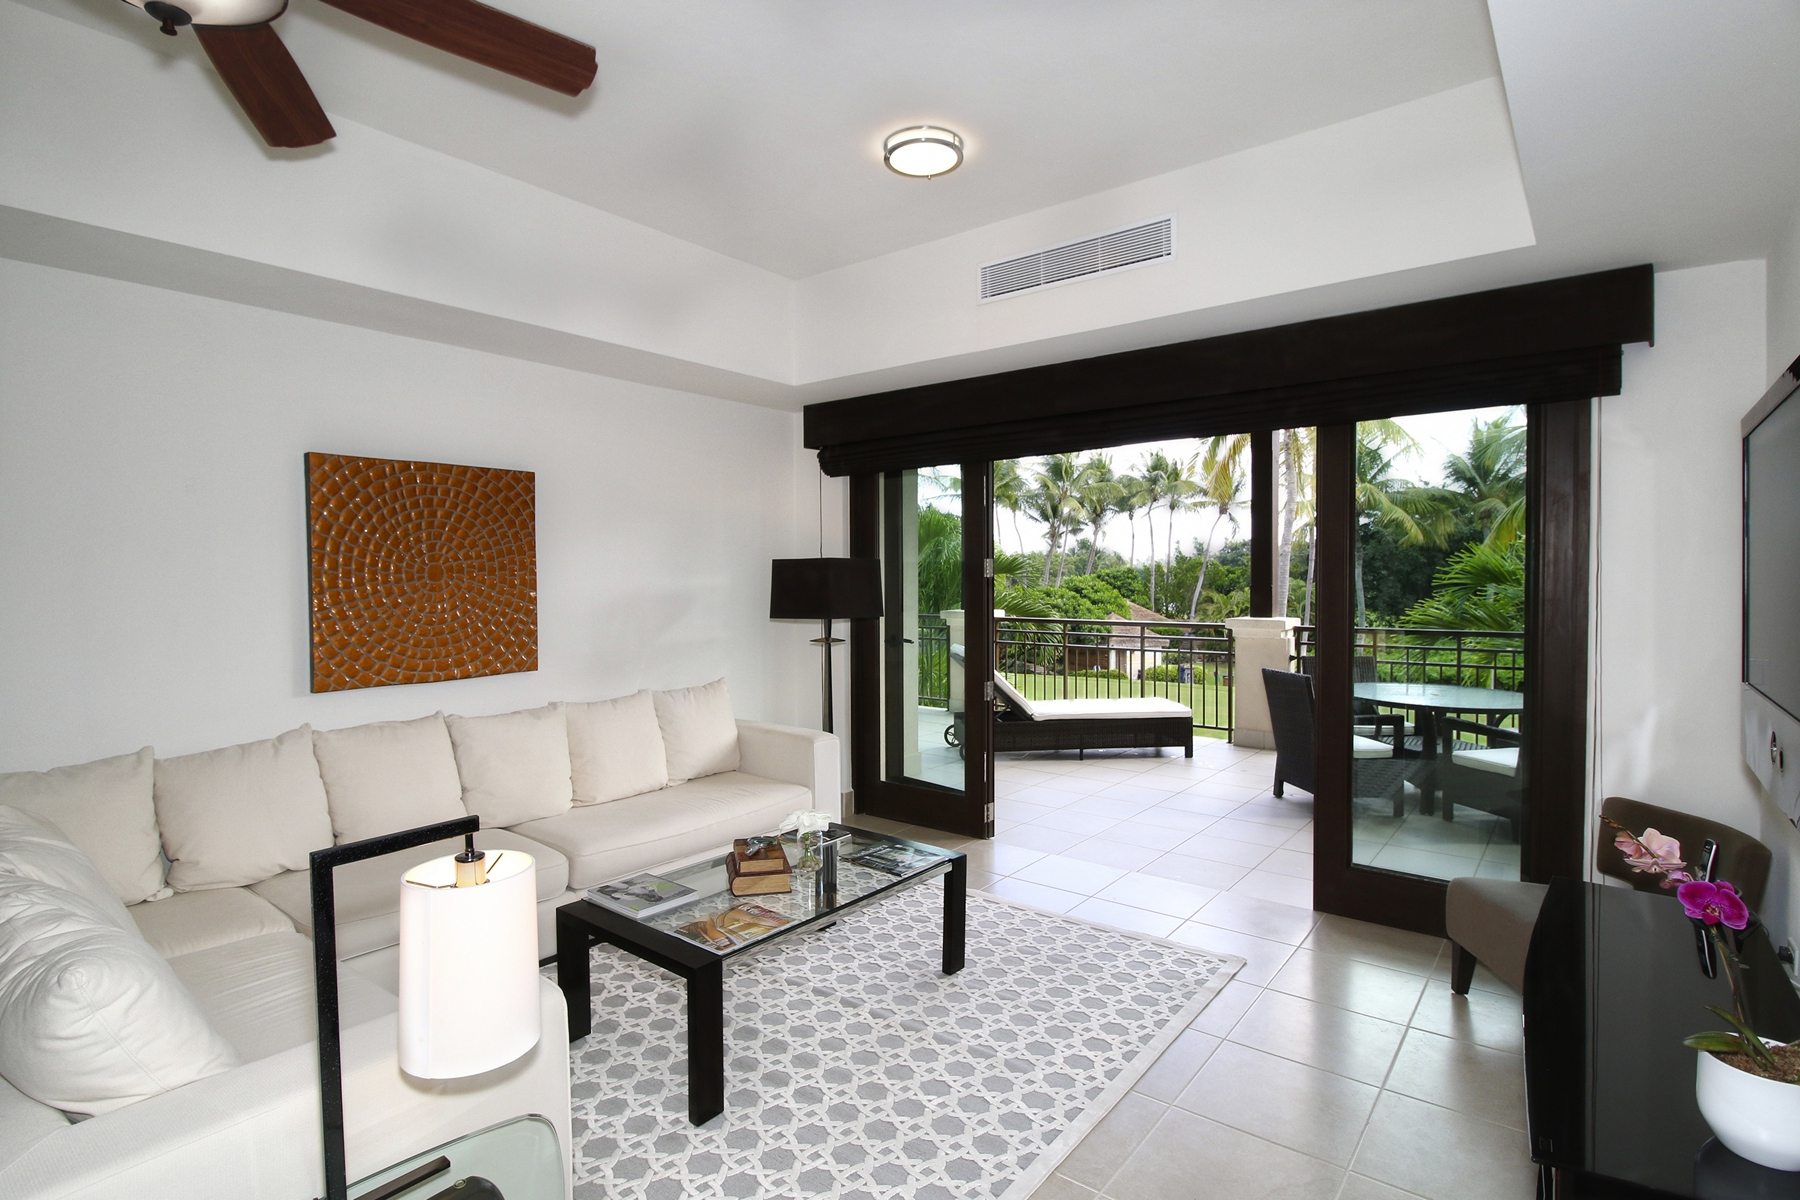 Additional photo for property listing at Golf front villa, St Regis Bahia Beach State Road 187, Km. 4.2 St Regis, Bahia Beach Bahia Beach, Puerto Rico 00745 Puerto Rico